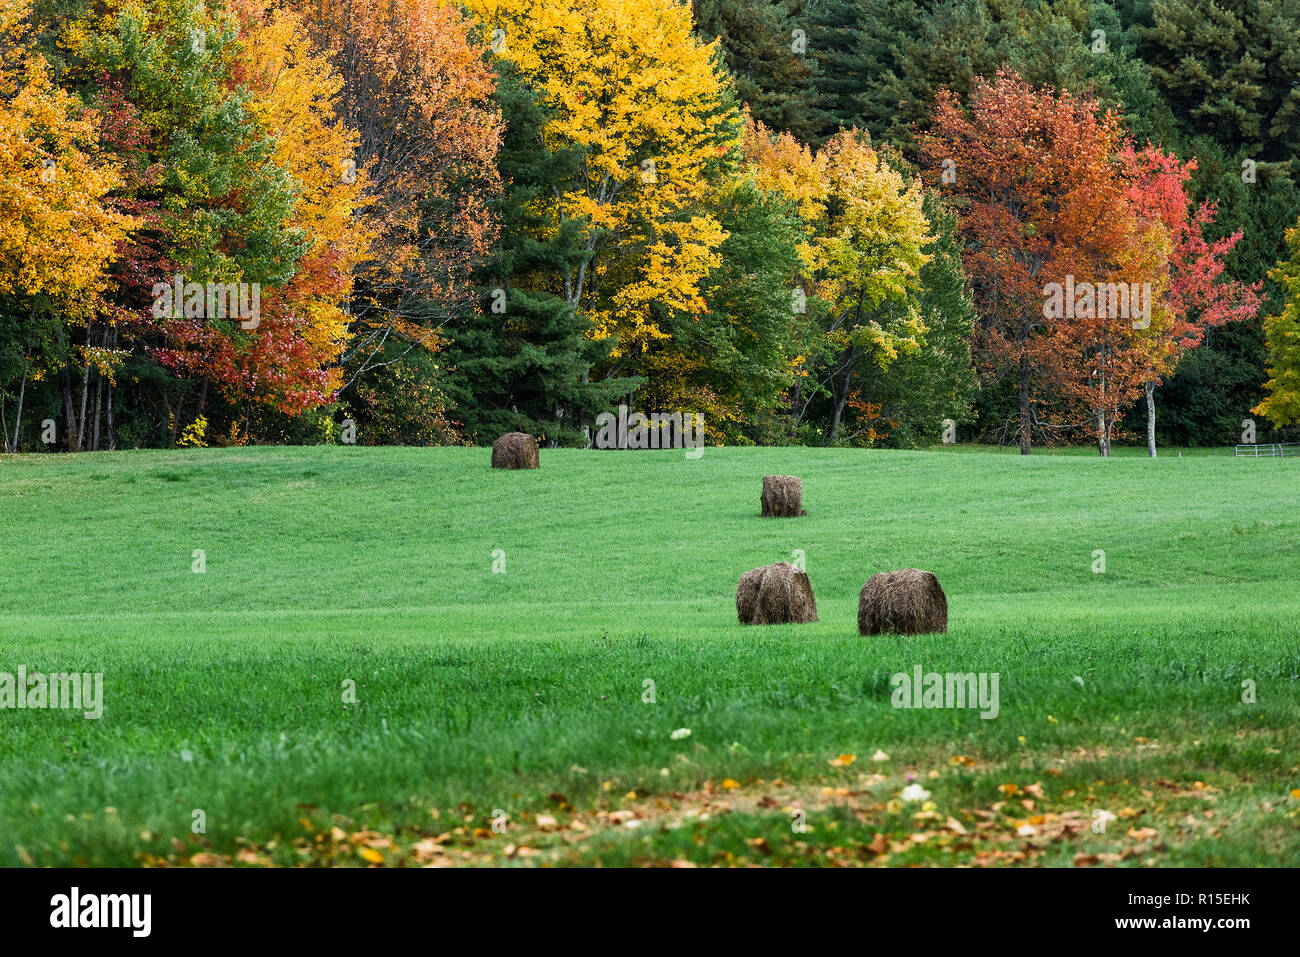 Hay bales in an an autumn field, Brandon, Vermont, USA. - Stock Image